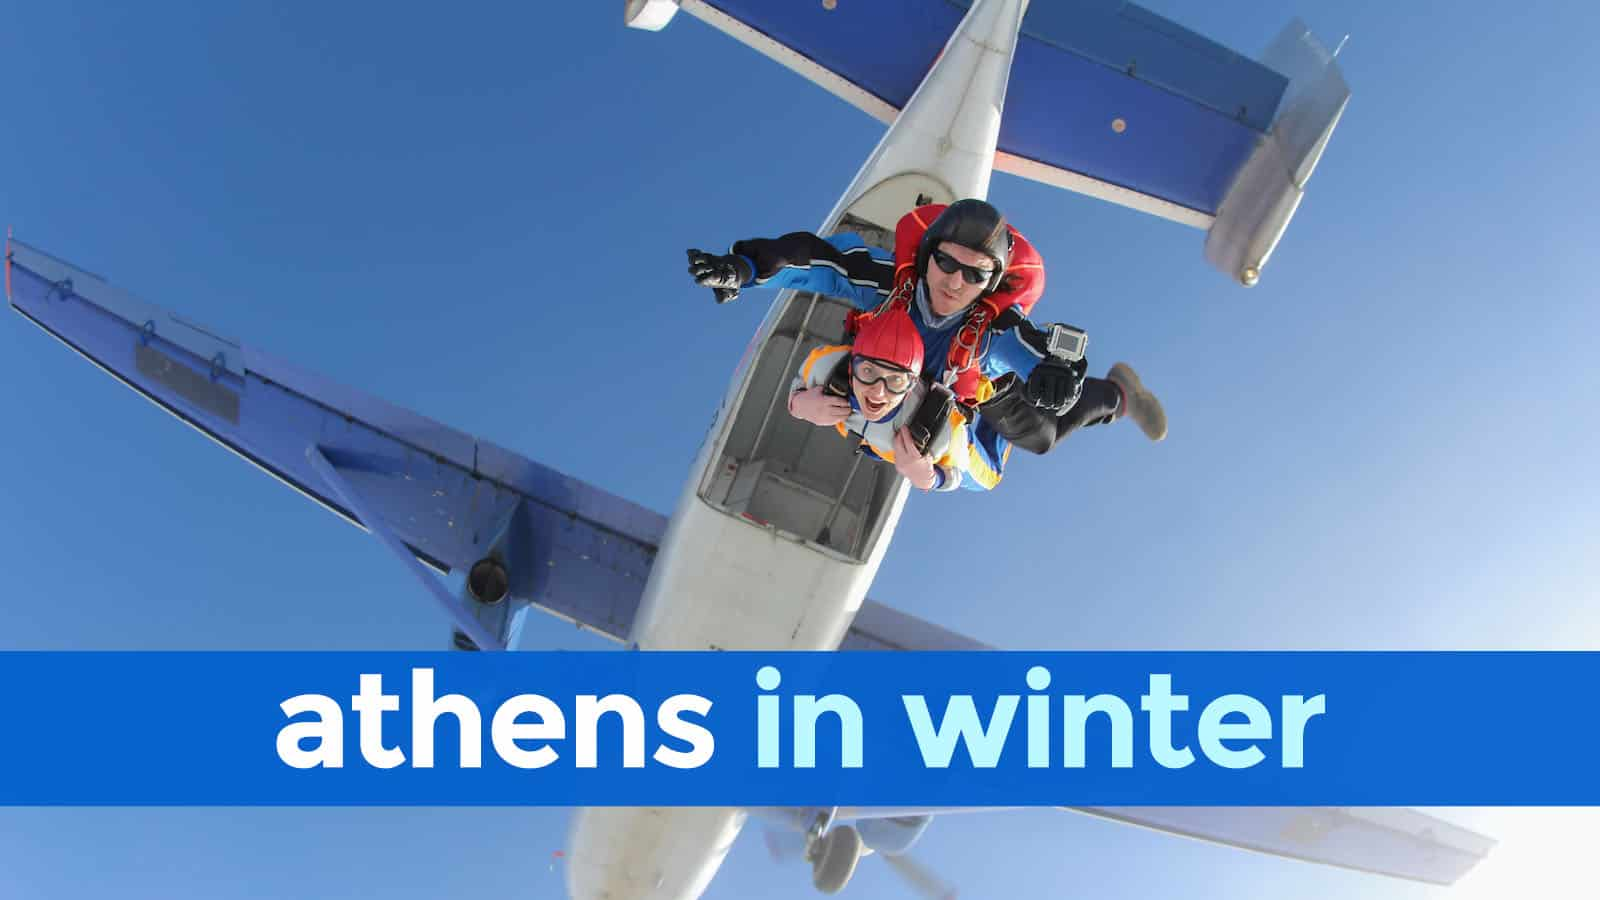 ATHENS IN WINTER: 7 Things to Do